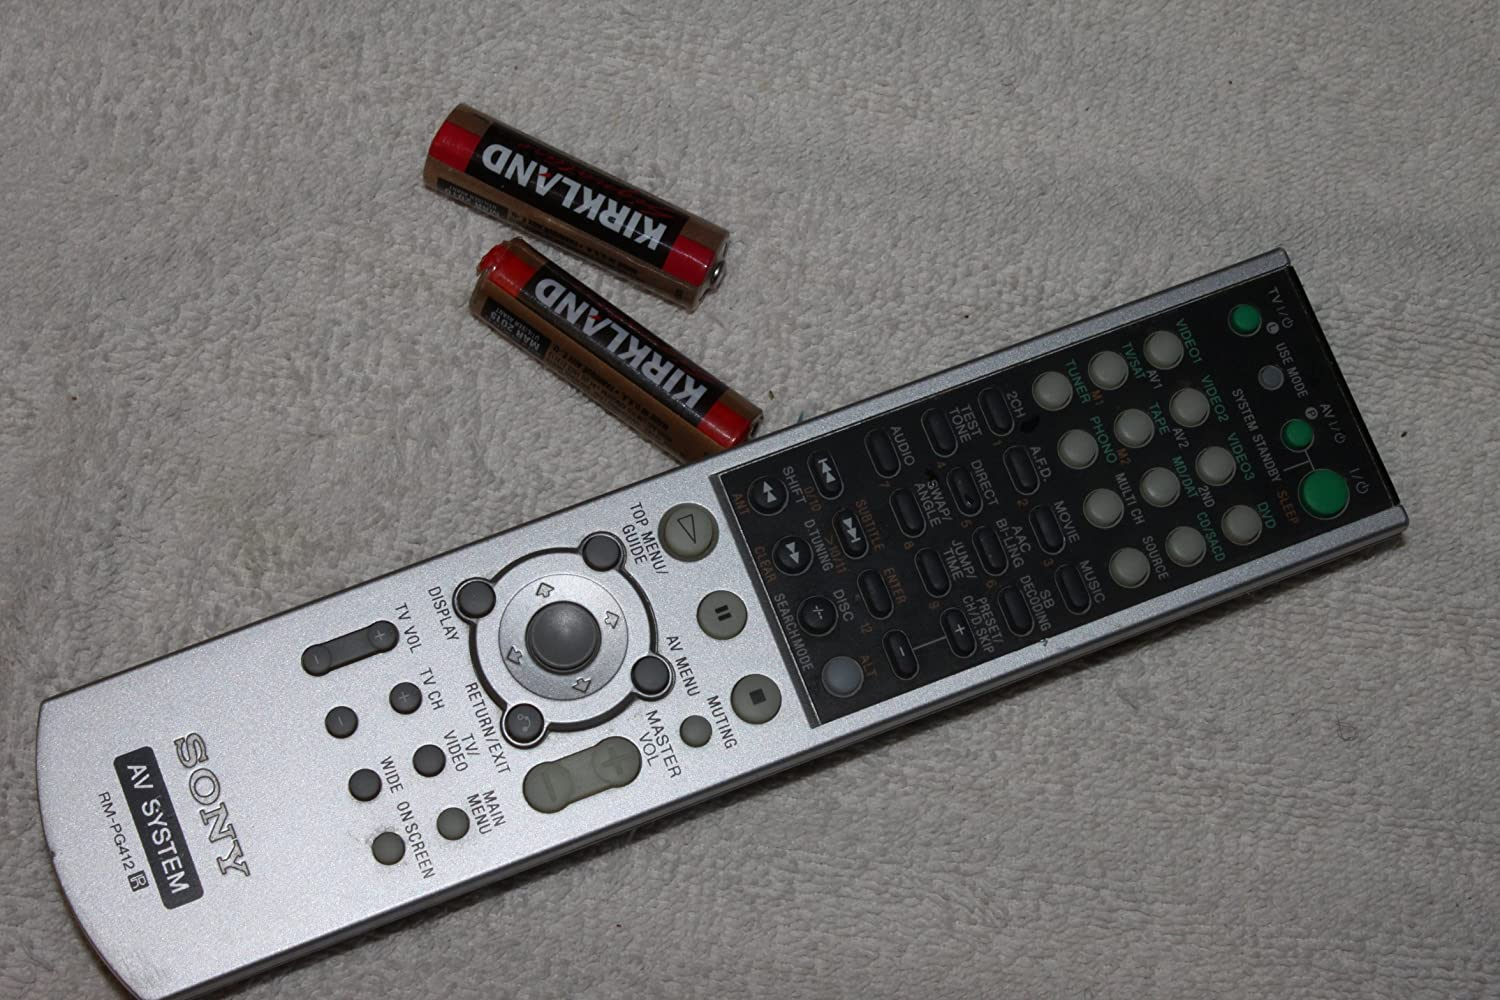 HT1800DP Replacement Remote Control for Sony STRDE895 HT6600DP STRK750P STRK751P